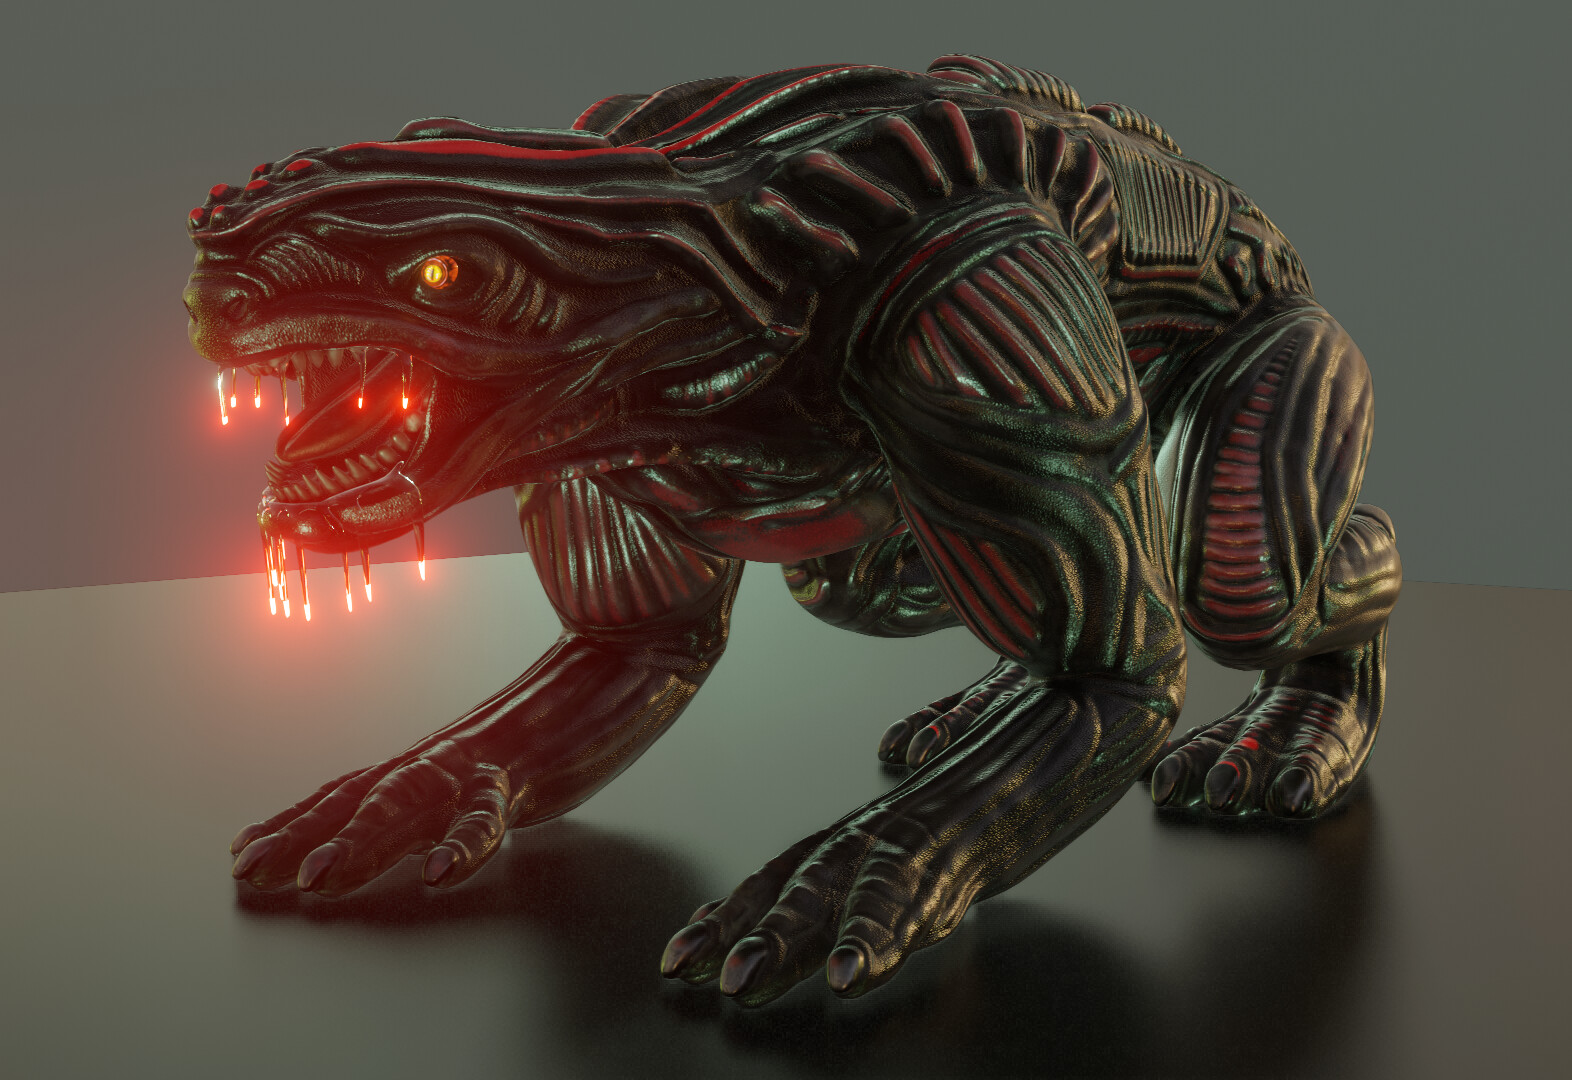 Here is an update of my alien animal creature for a use in Blender-2.8x  Free Donwloads: https://3dhaupt.com/2020/01/30/alien-animal-update-in-blender-2-8x/